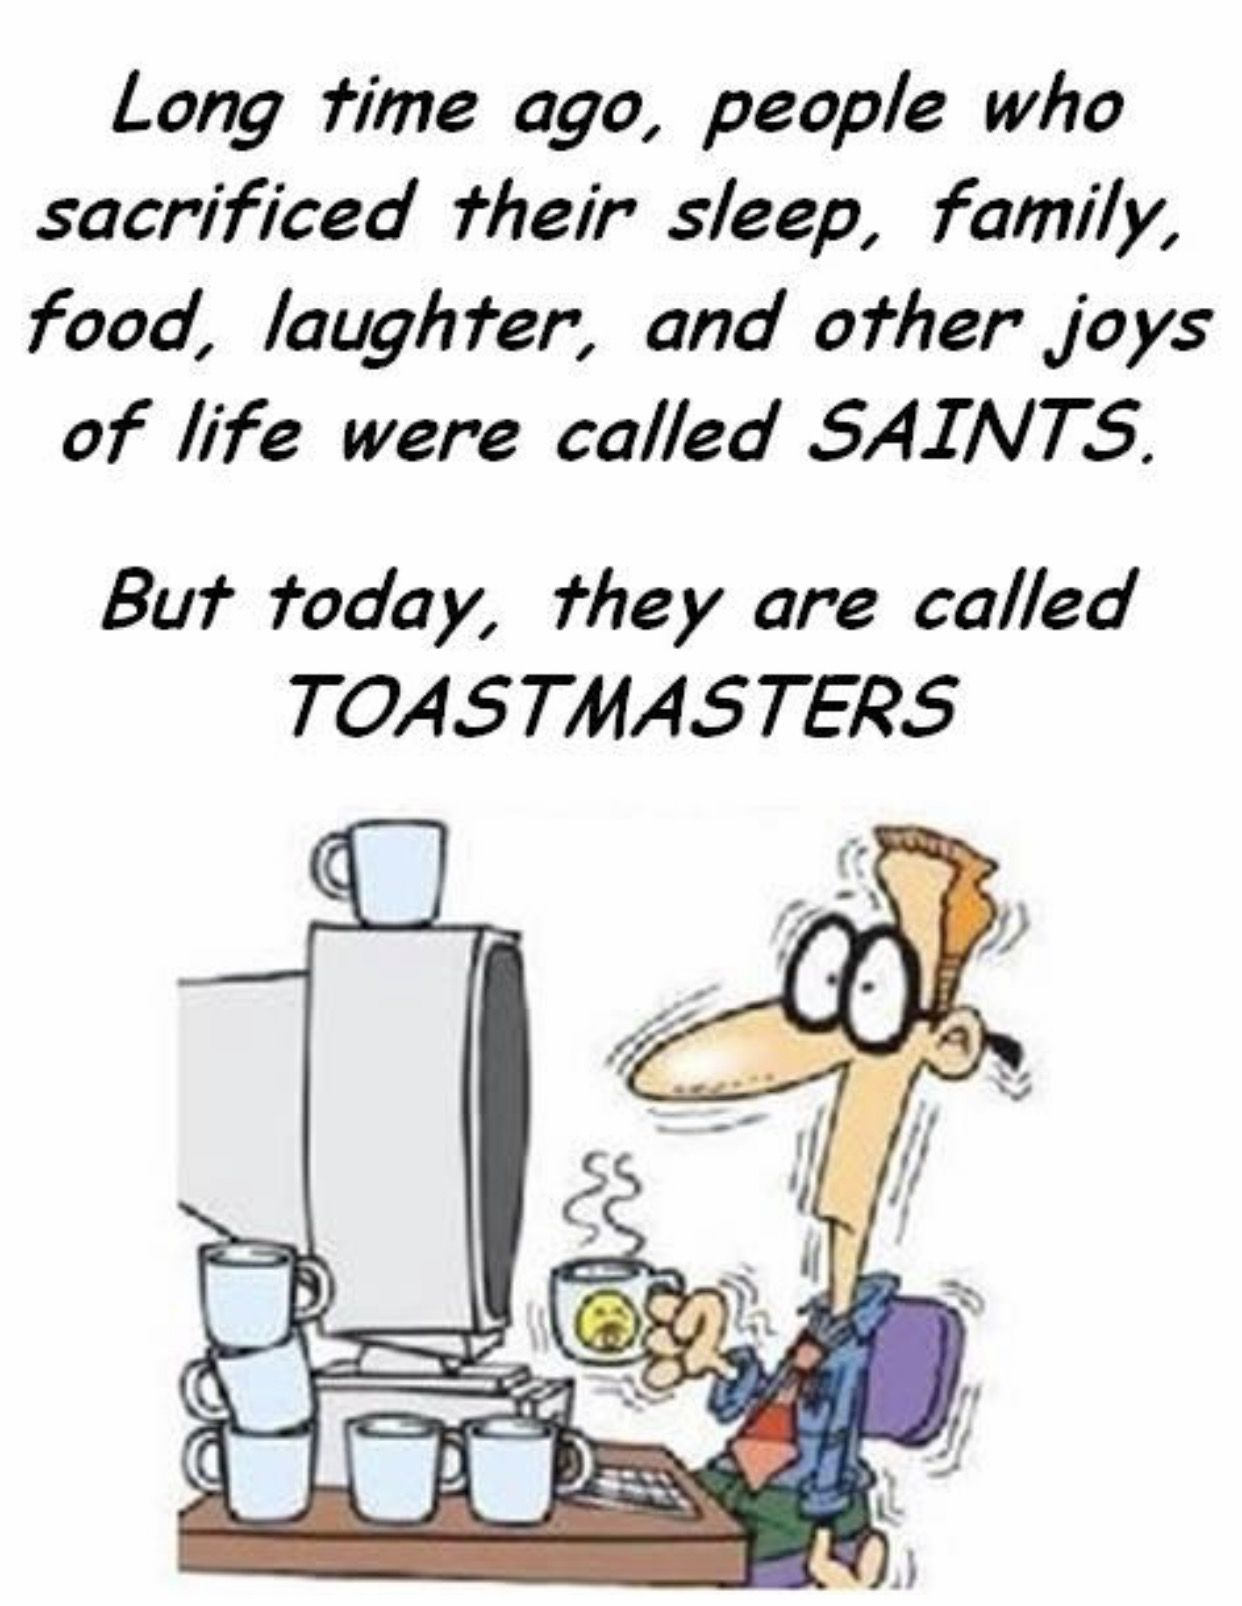 Friday Funnies Don T Let Speech Prep Or Toastmasters Club Duties Get You Down Rochmn D6tm Rochdmc Funny Technology Quotes Technology Humor Joy Of Life